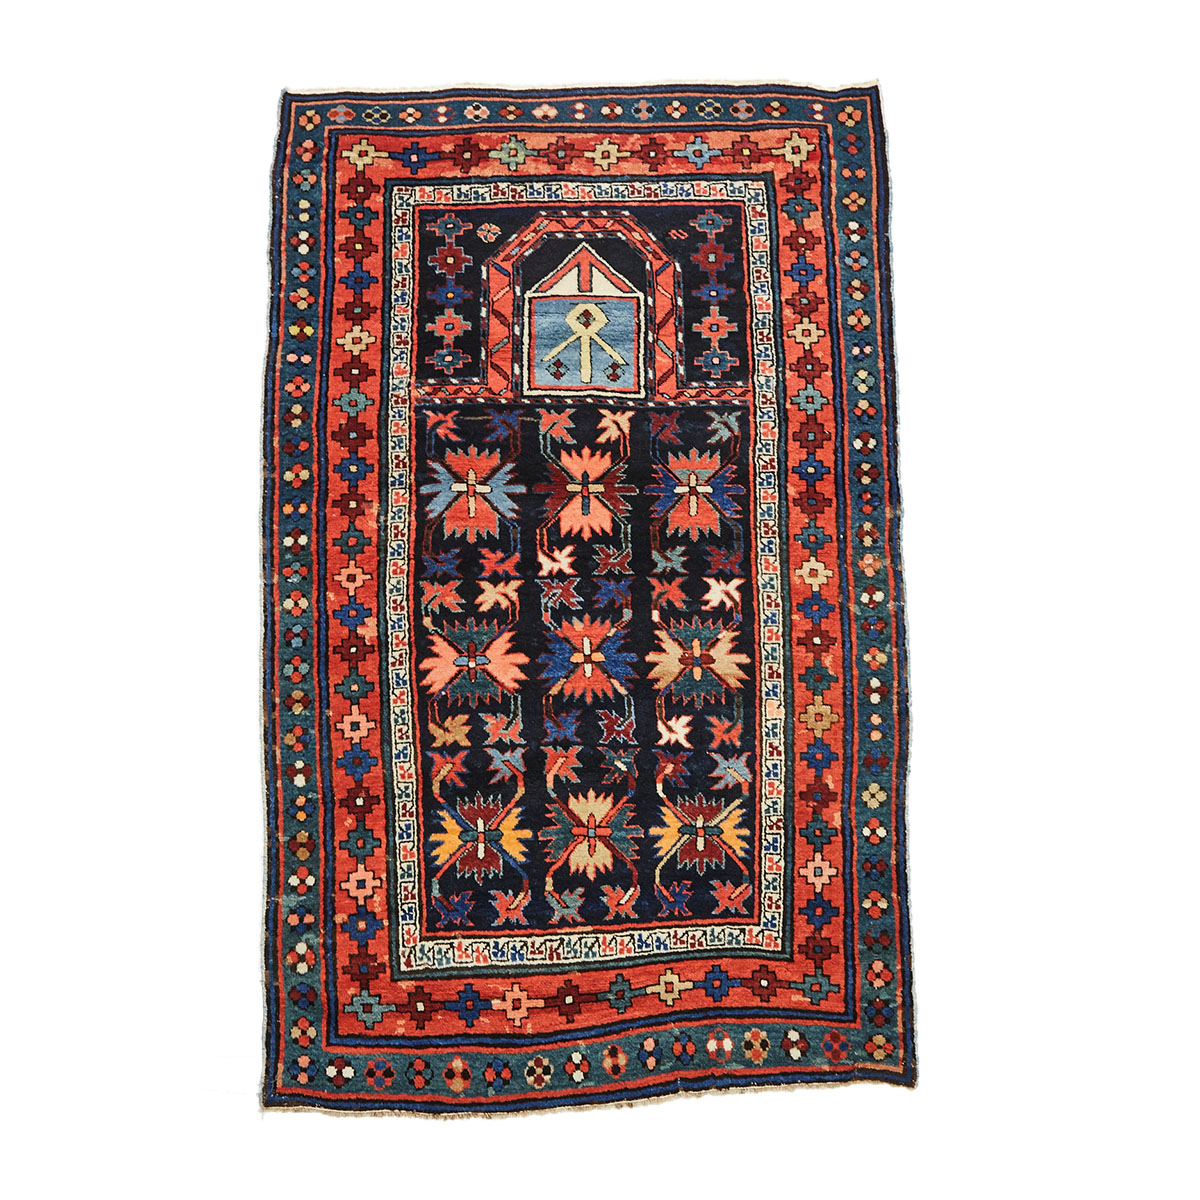 Kurdish Prayer Rug, mid to late 20th century